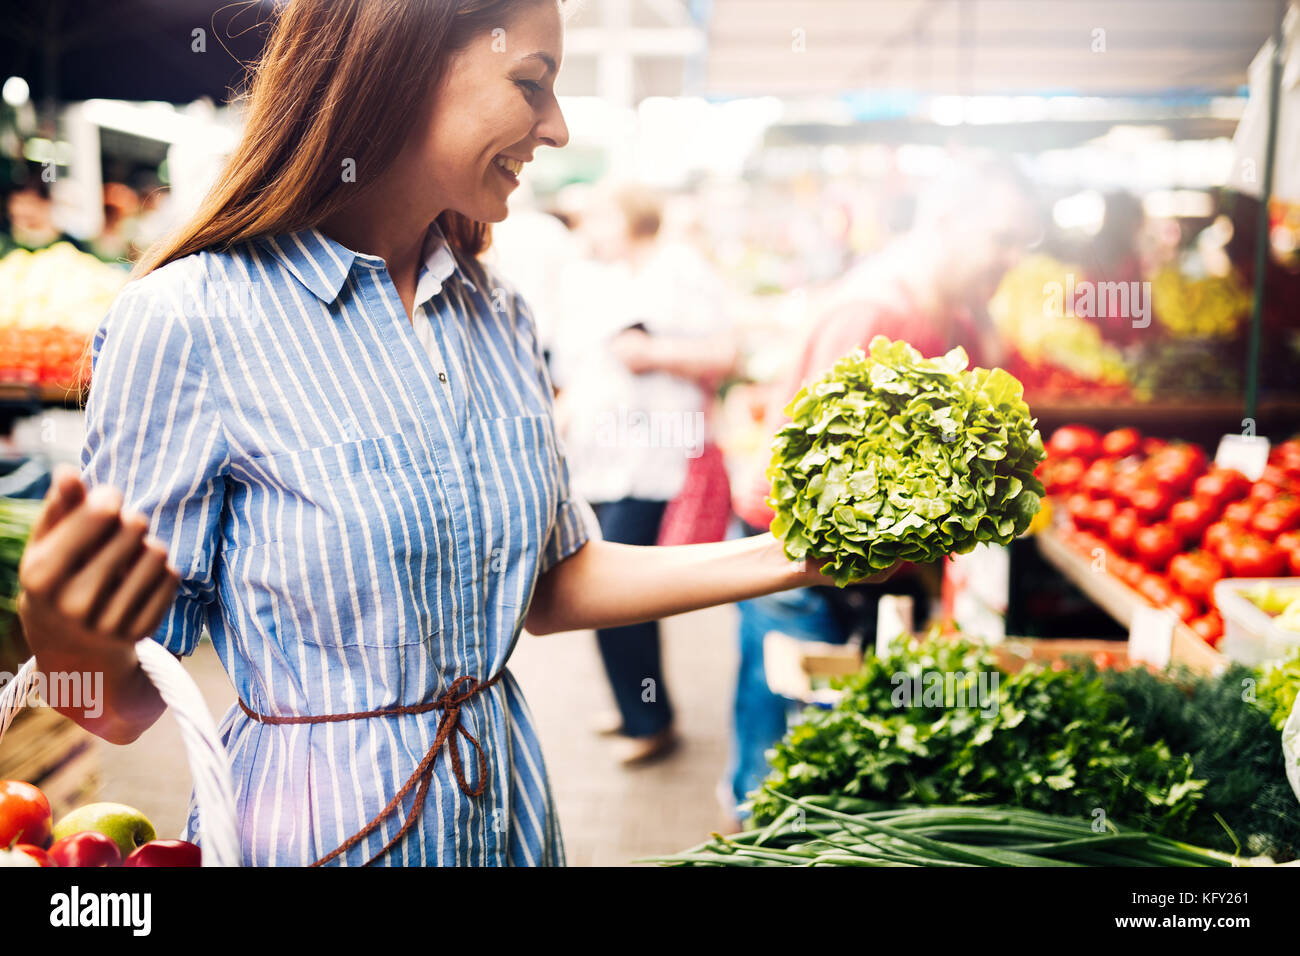 Picture of woman at marketplace buying vegetables - Stock Image